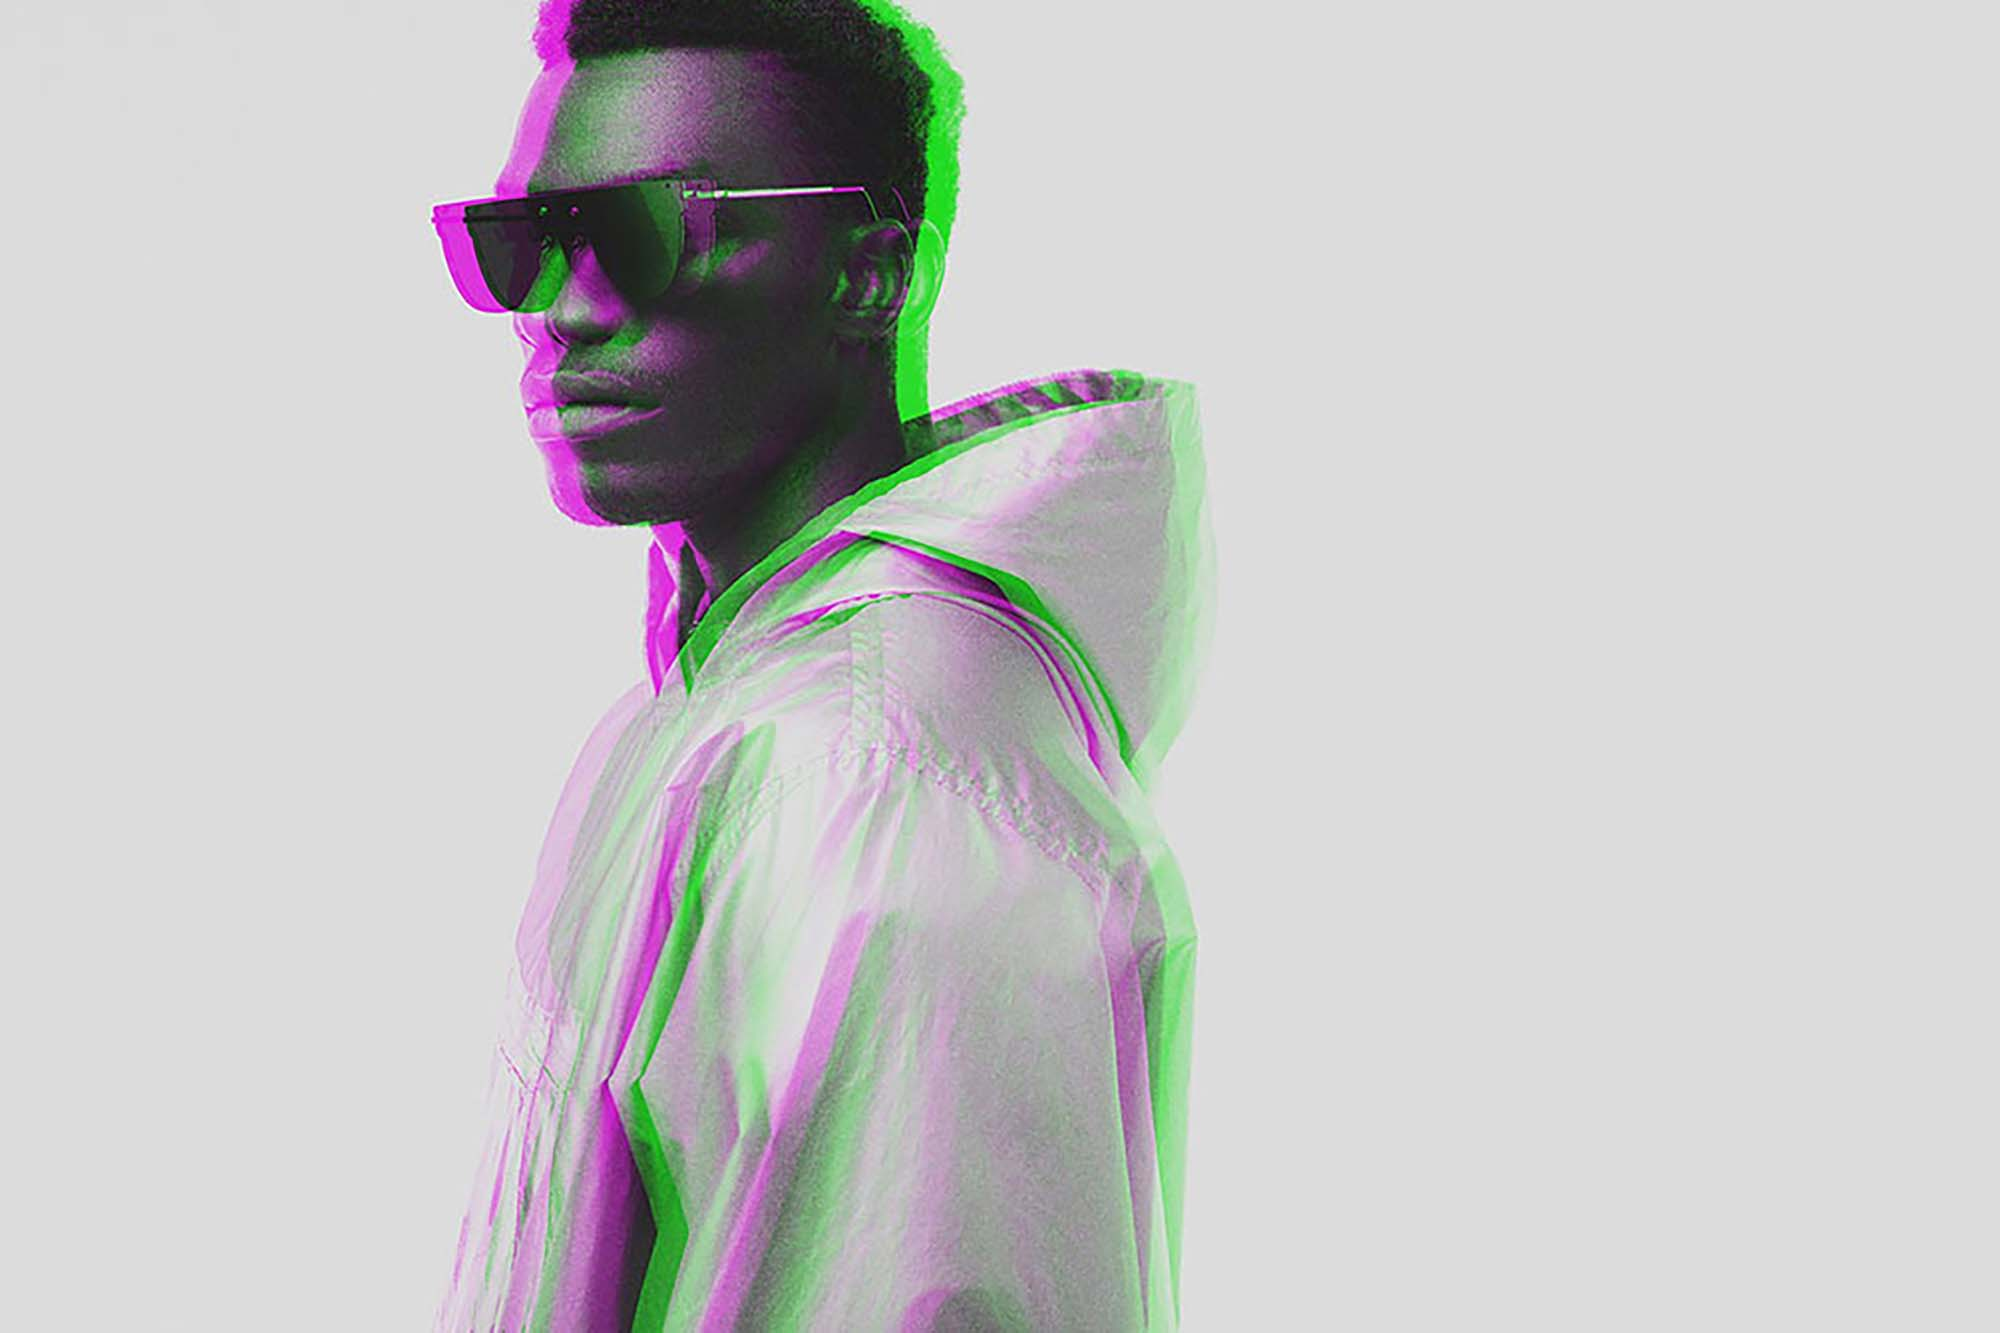 3D Anaglyph Photoshop Effect 2